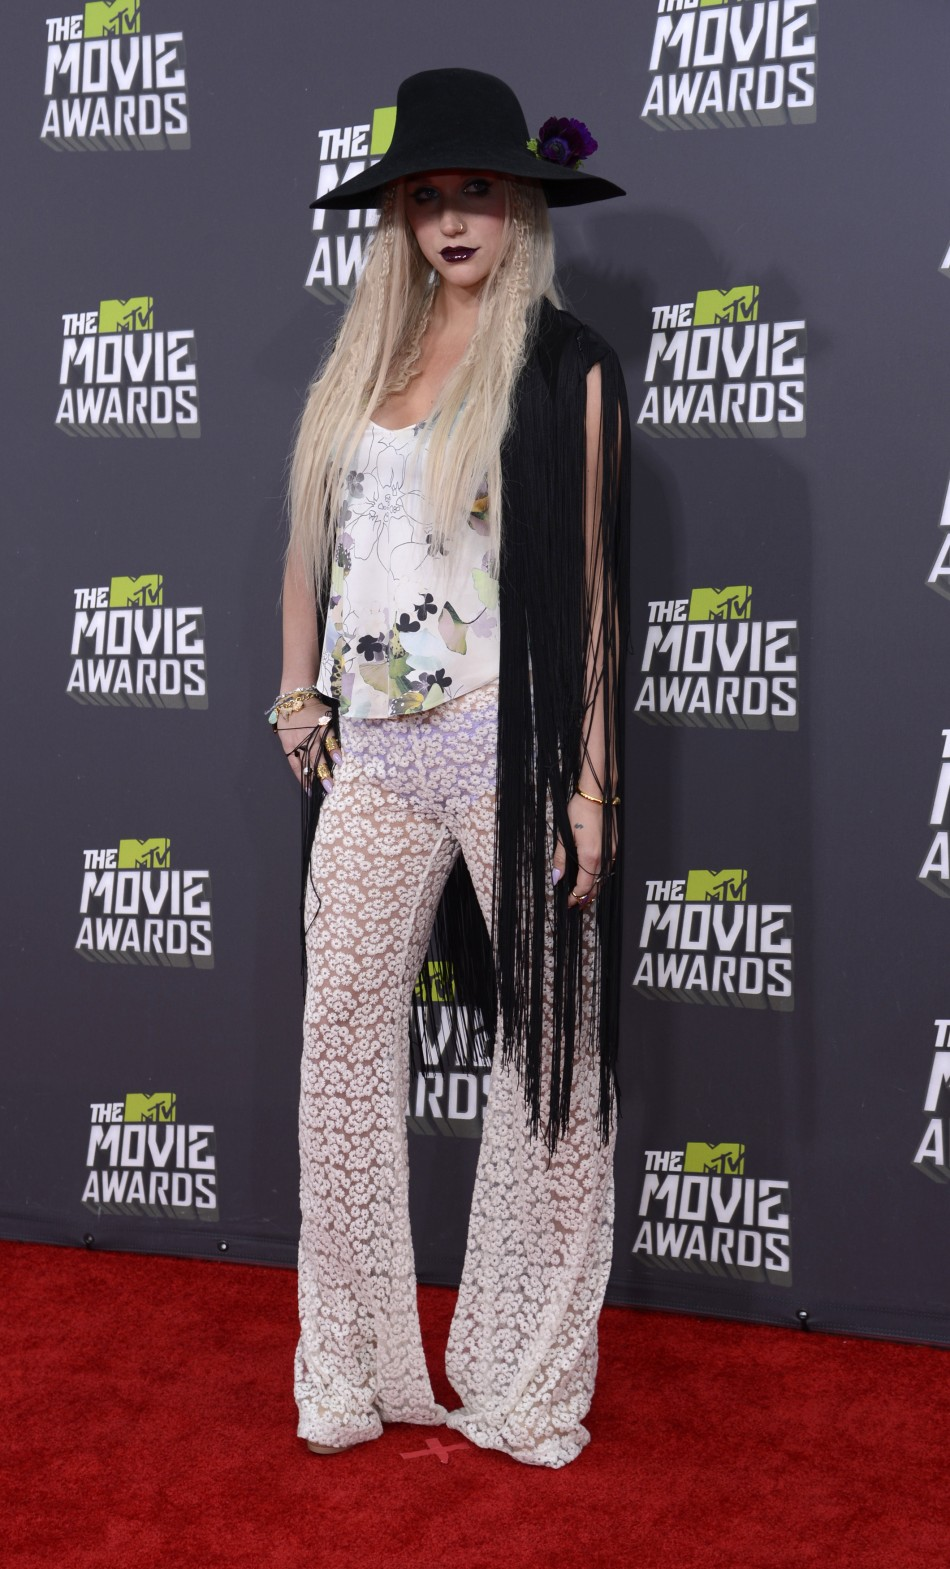 Singer Keha arrives at the 2013 MTV Movie Awards in Culver City, California April 14, 2013.